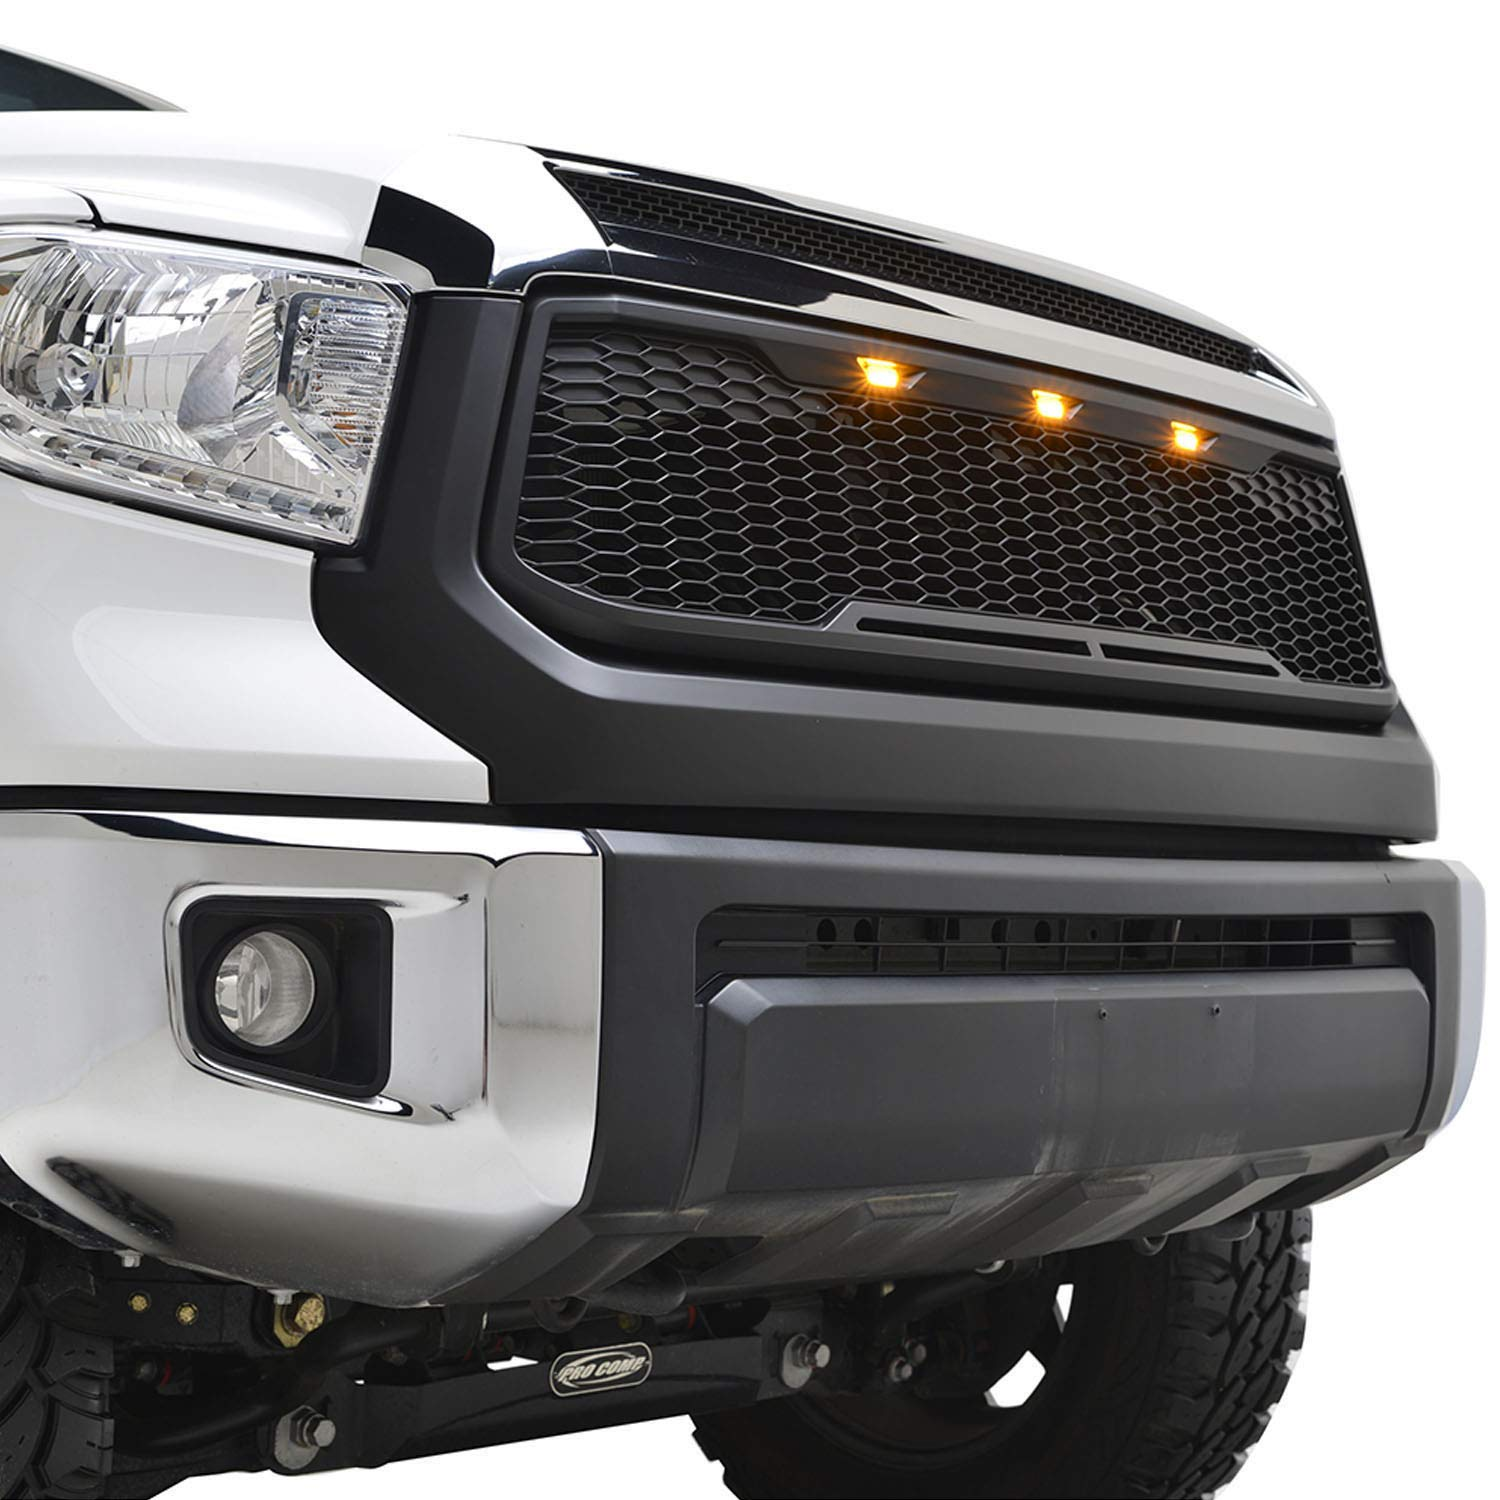 Tidal Raptor Style Upper Replacement Grille w/LED Amber Lighting for 14-17 Toyota Tundra - Matte Blcak Tidal Automotive